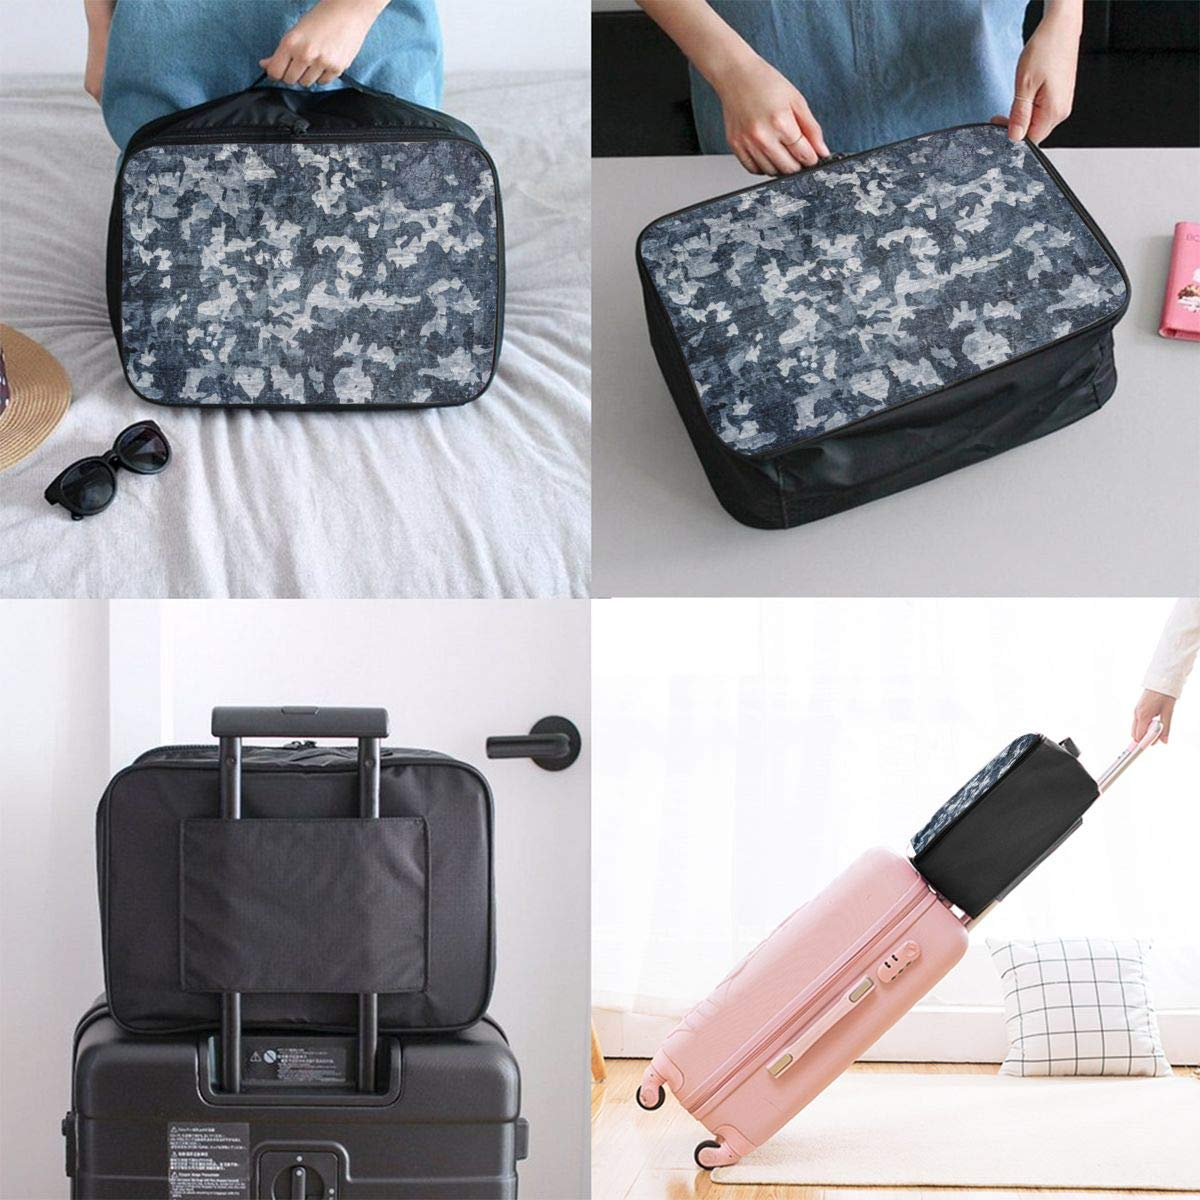 Broken Wall Space Vintage Texture Grunge Travel Lightweight Waterproof Foldable Storage Carry Luggage Duffle Tote Bag Large Capacity In Trolley Handle Bags 6x11x15 Inch